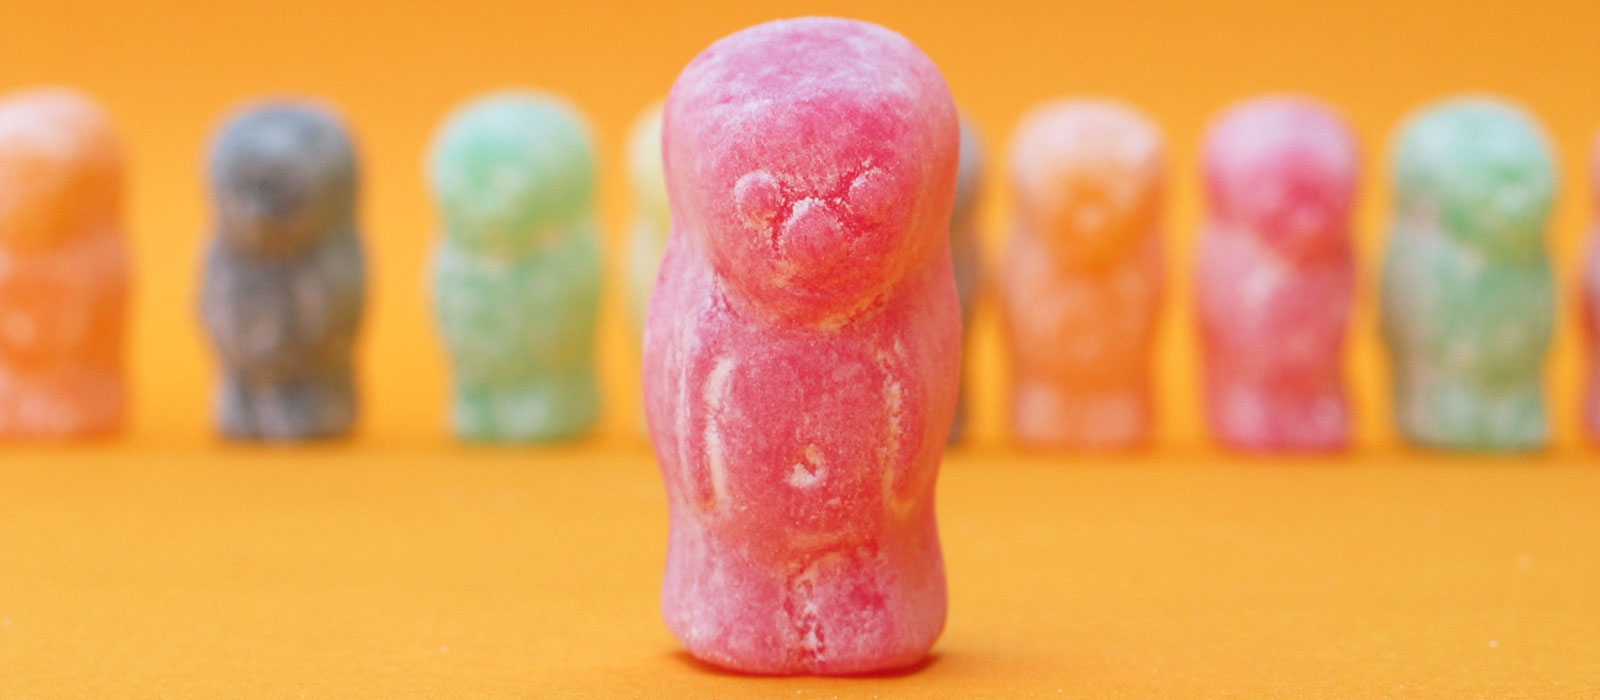 Jelly babies image